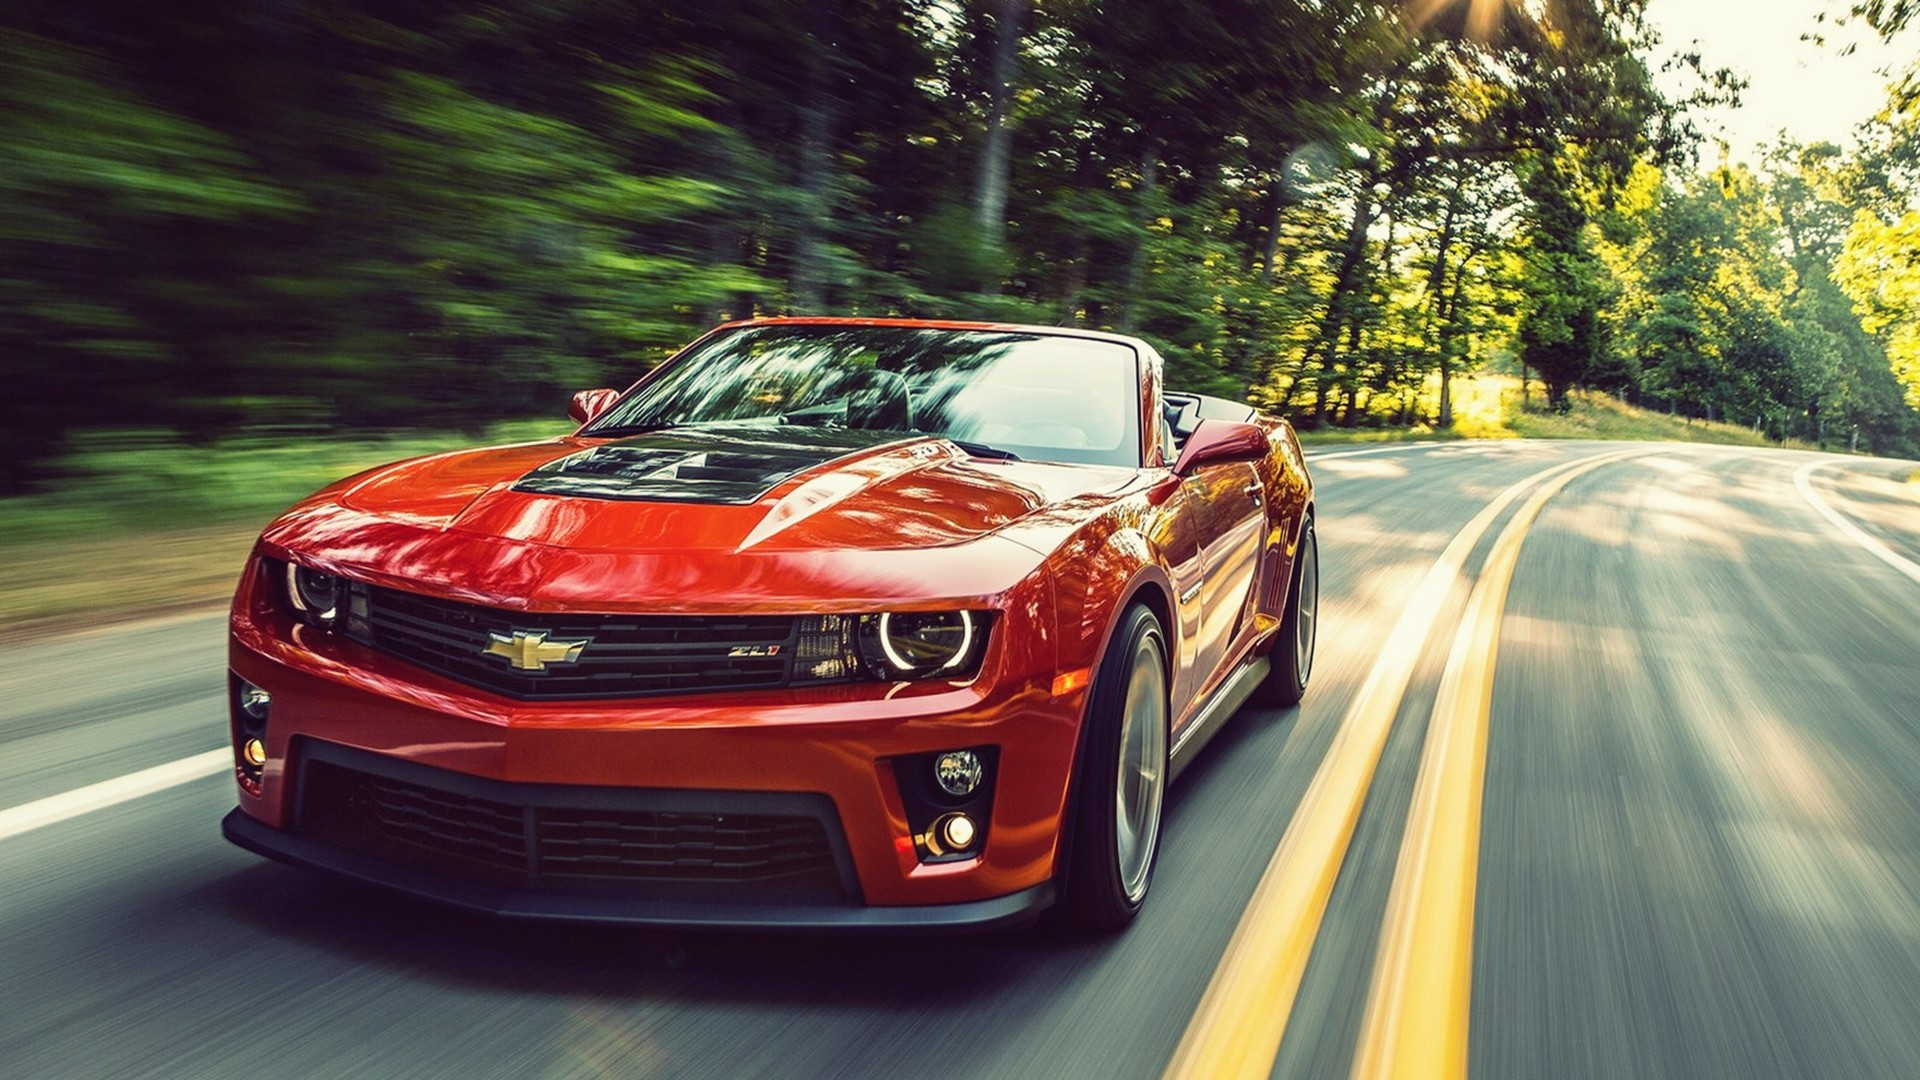 28 Chevrolet Camaro ZL1 HD Wallpapers  Backgrounds  Wallpaper Abyss